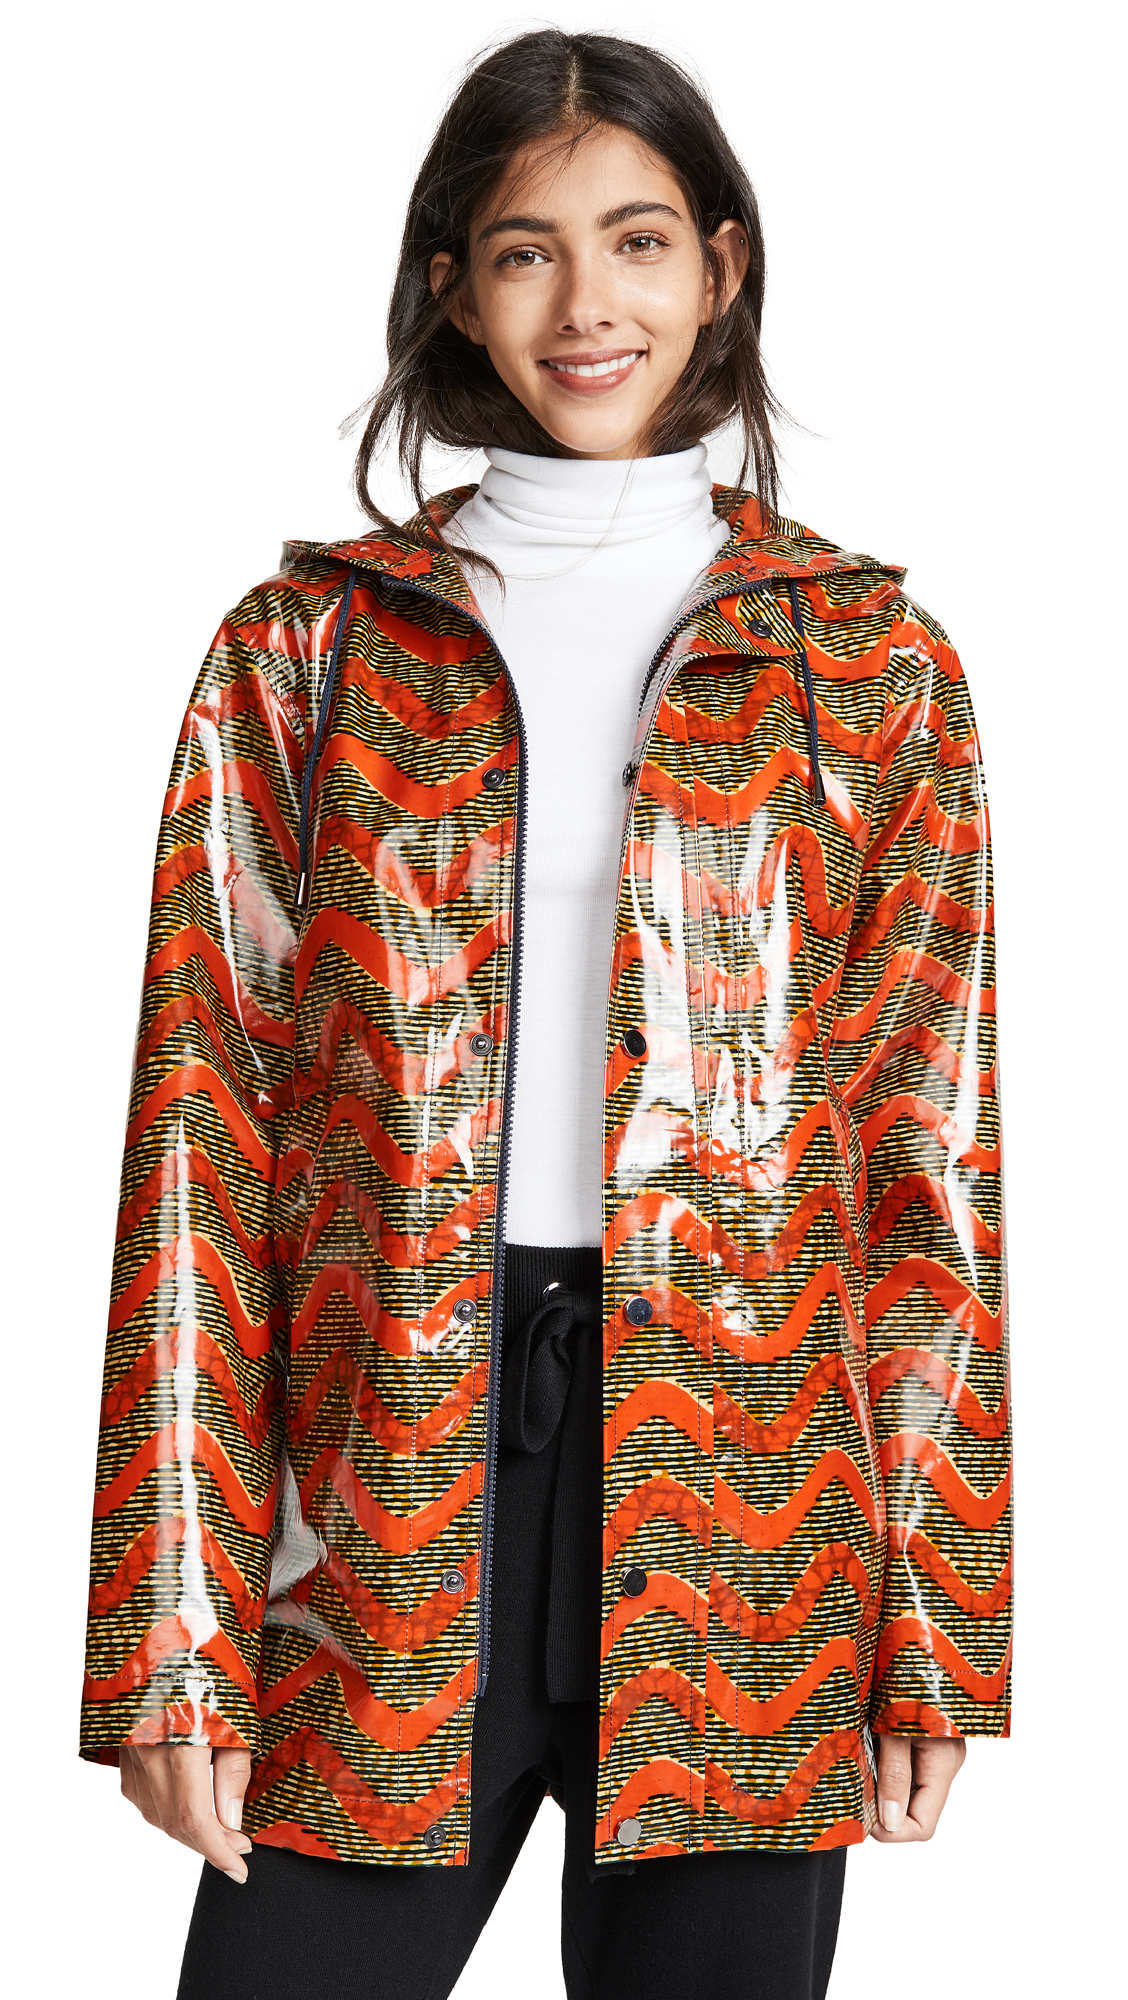 MAISON CHATEAU ROUGE Printed Rain Coat in Tchatchatcha Orange